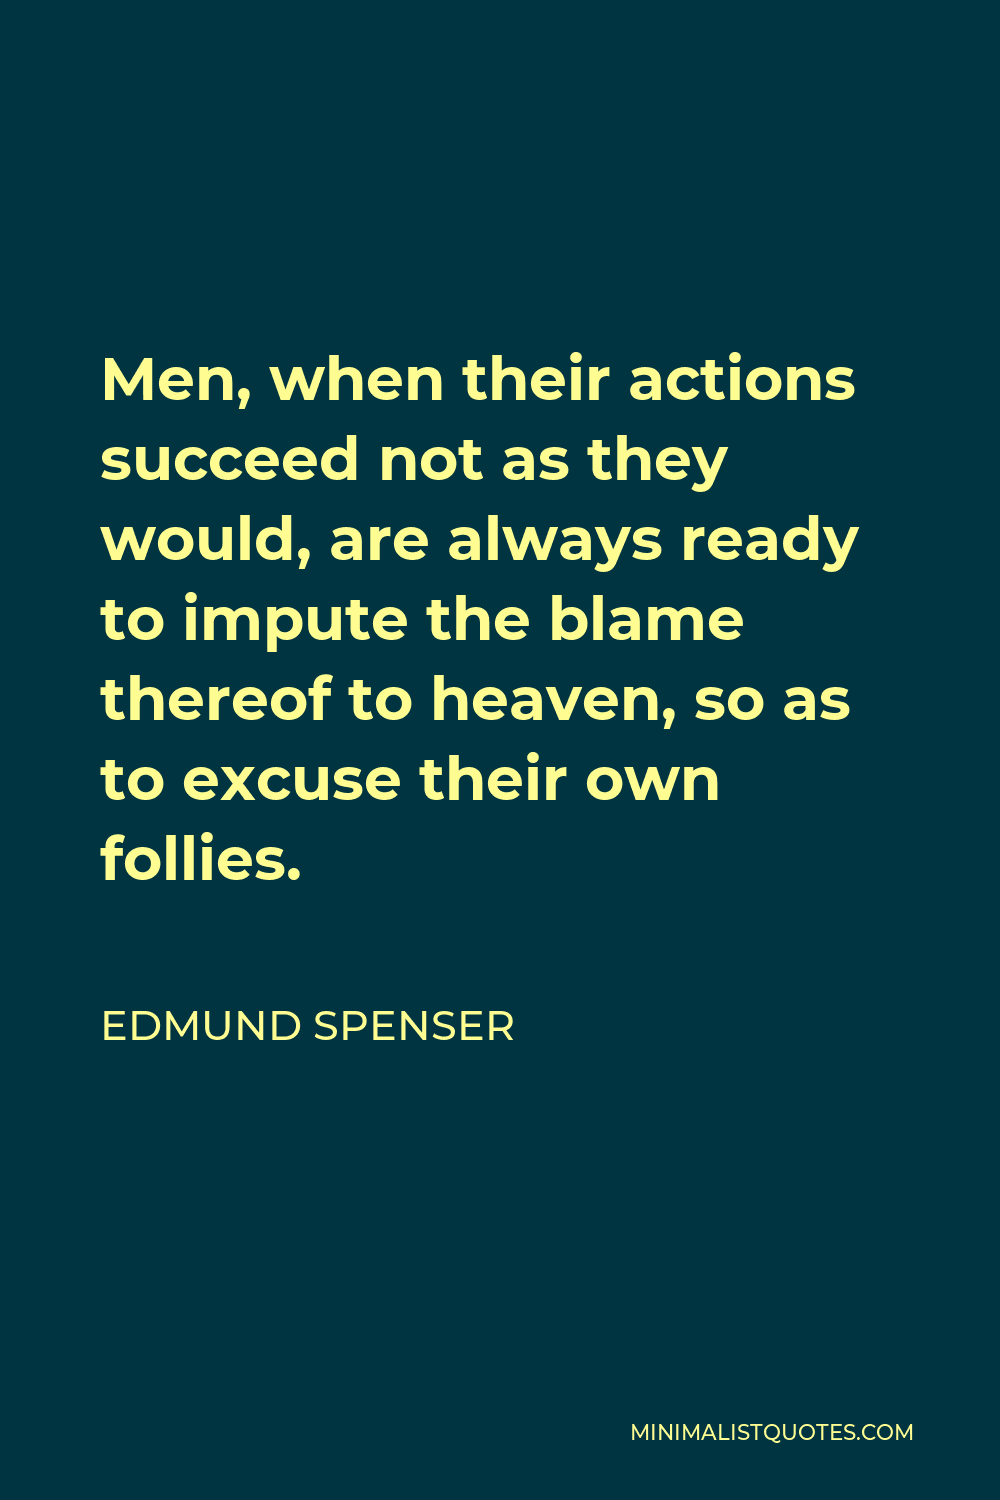 Edmund Spenser Quote - Men, when their actions succeed not as they would, are always ready to impute the blame thereof to heaven, so as to excuse their own follies.